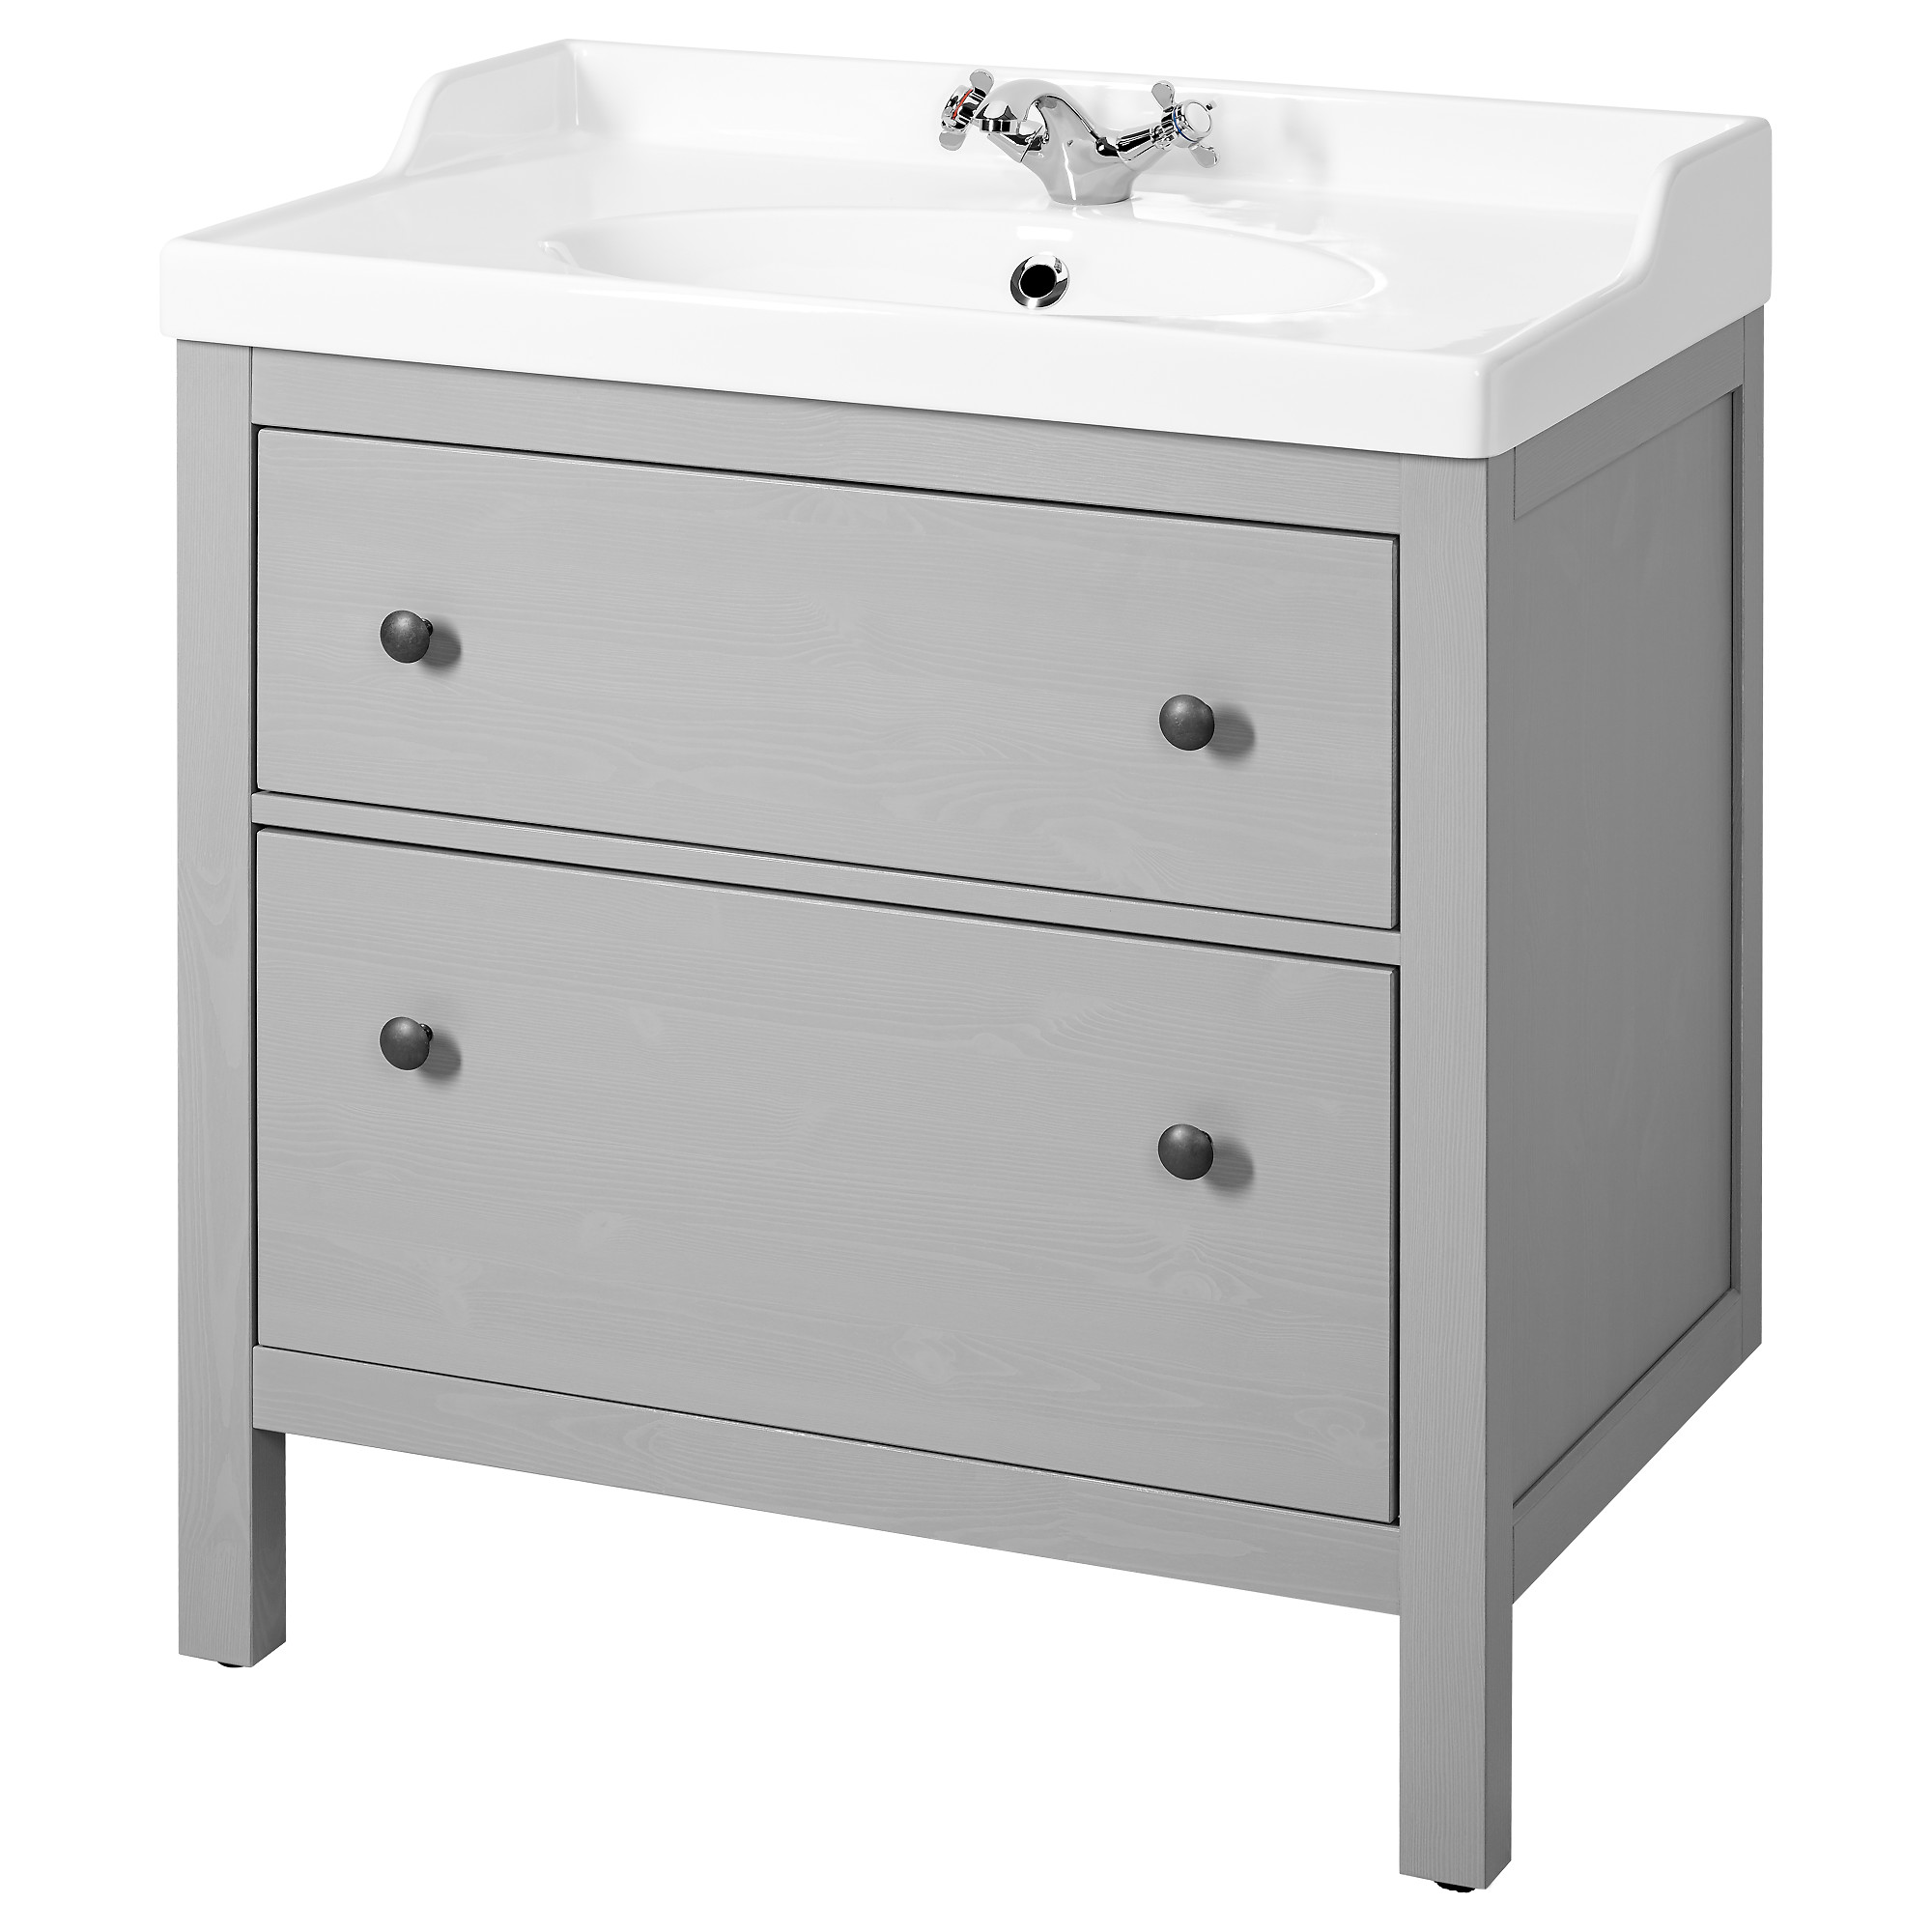 Bathroom sink cabinets ikea - Hemnes R Ttviken Sink Cabinet With 2 Drawers Gray Width 32 5 8